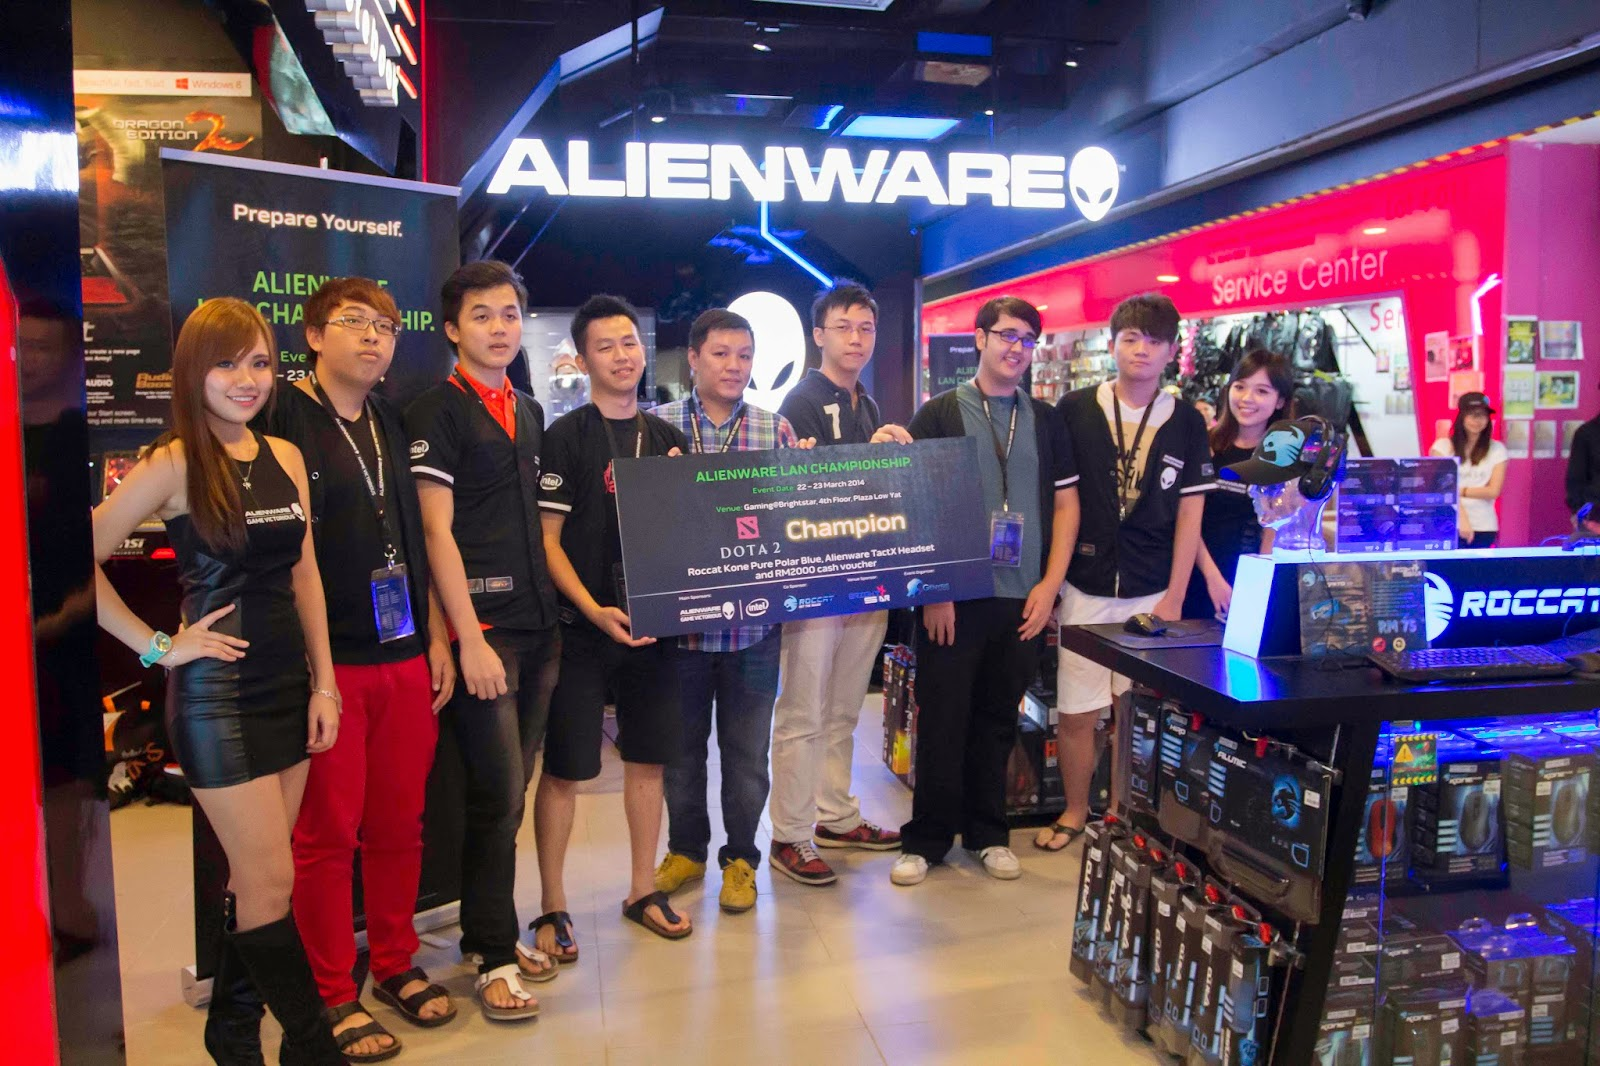 Malaysia's Leading Gamers Battle It Out at Alienware Tournament Alienware and Genysis Cyber E-sport Joined Forces for Alienware LAN Championship 15